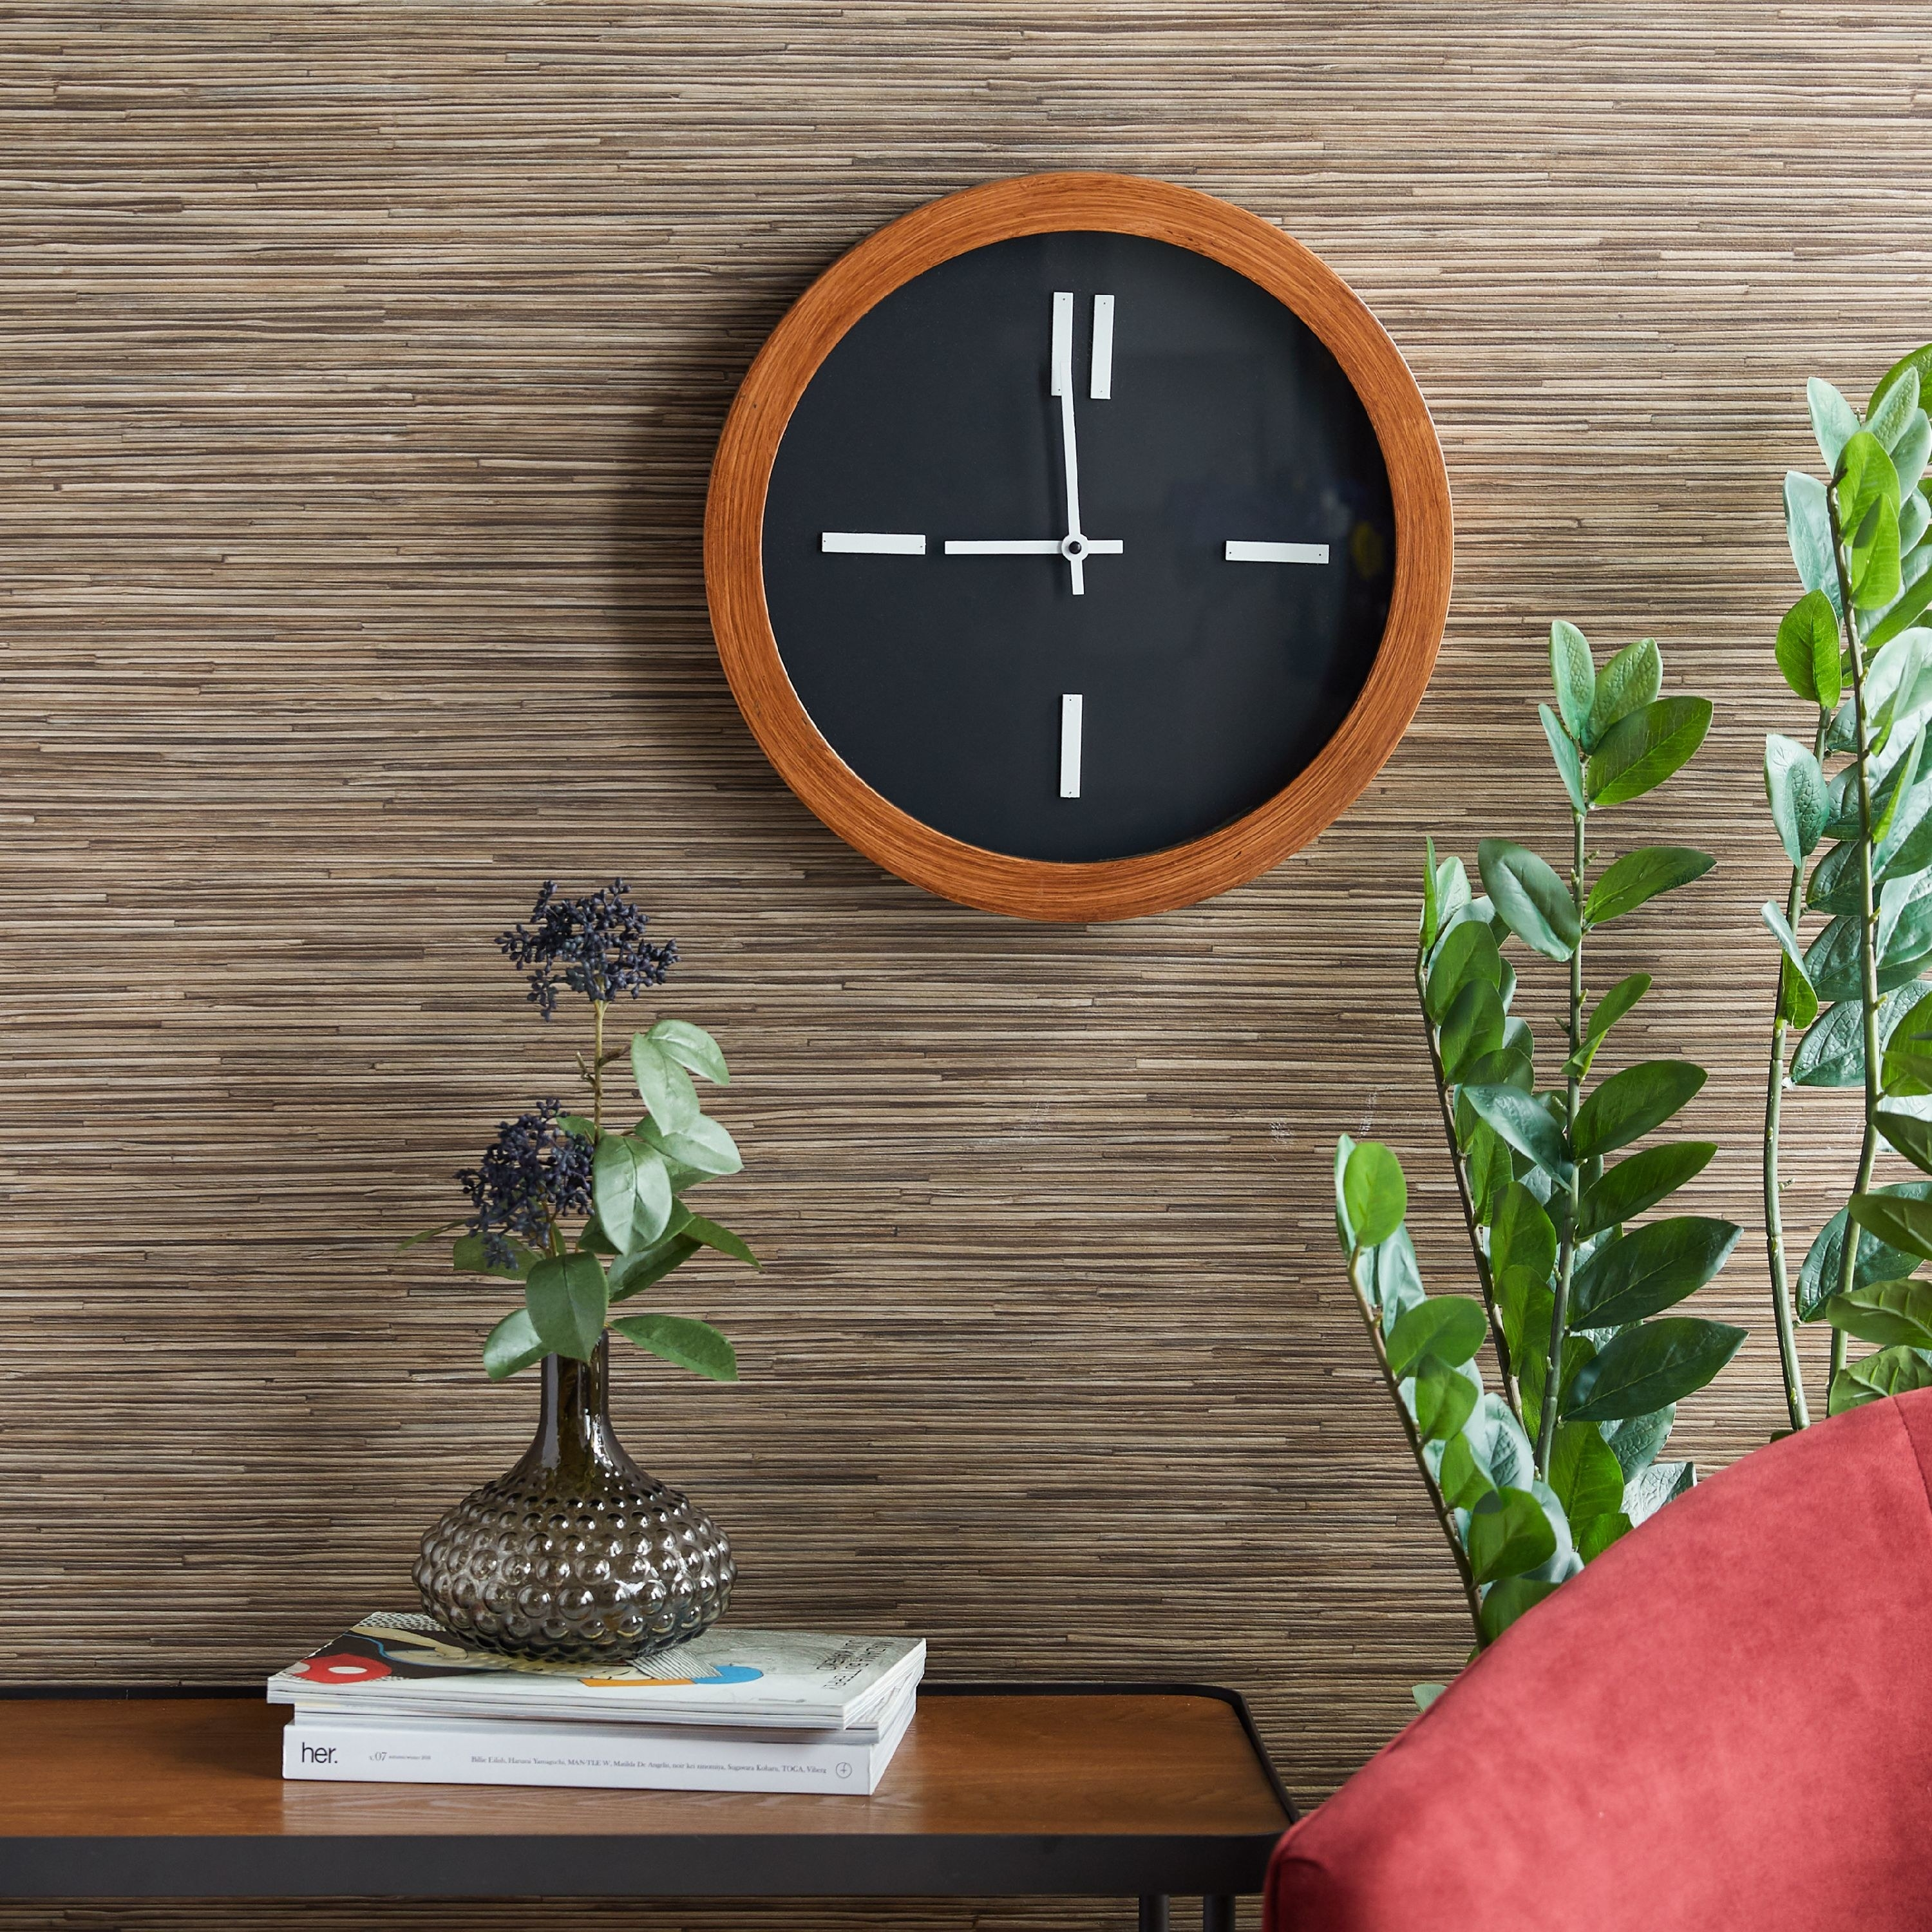 The brown and black clock hanging